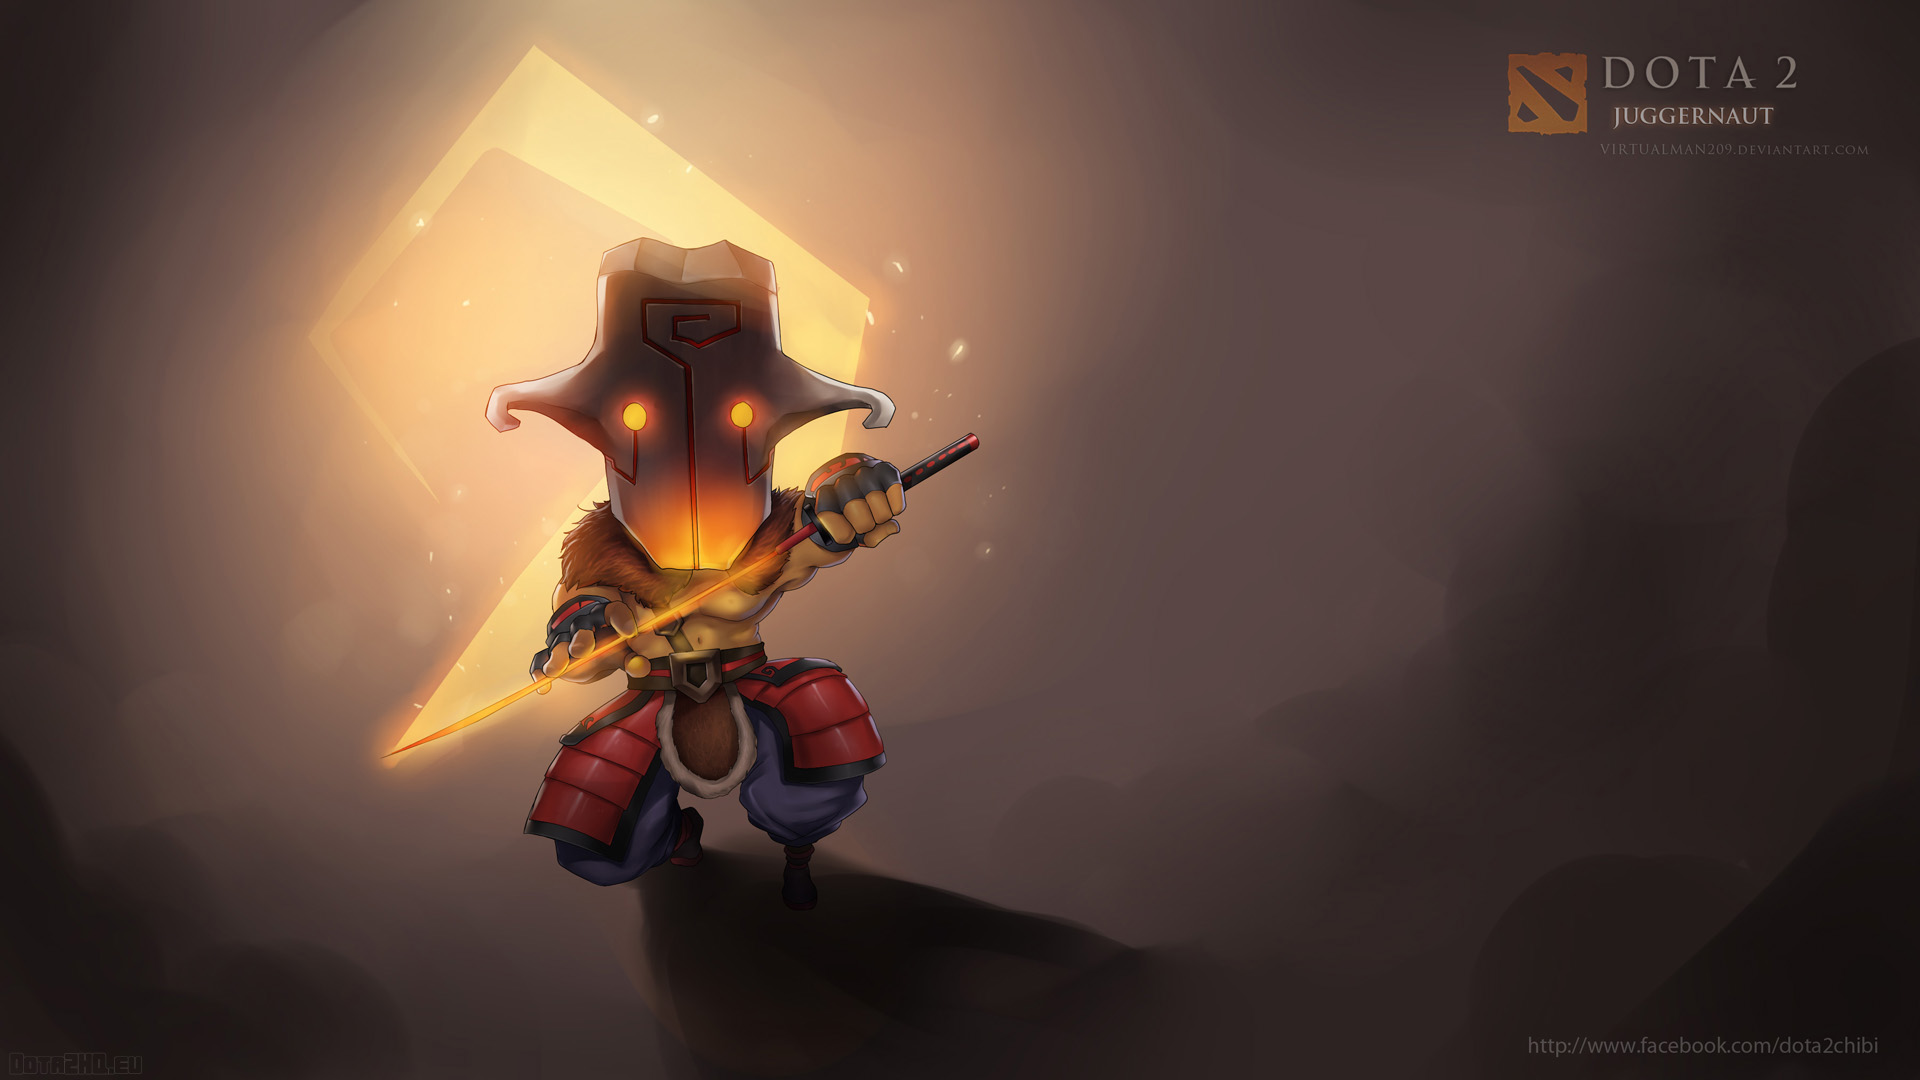 HD Wallpaper Of Juggernaut Dota 2 Chibi